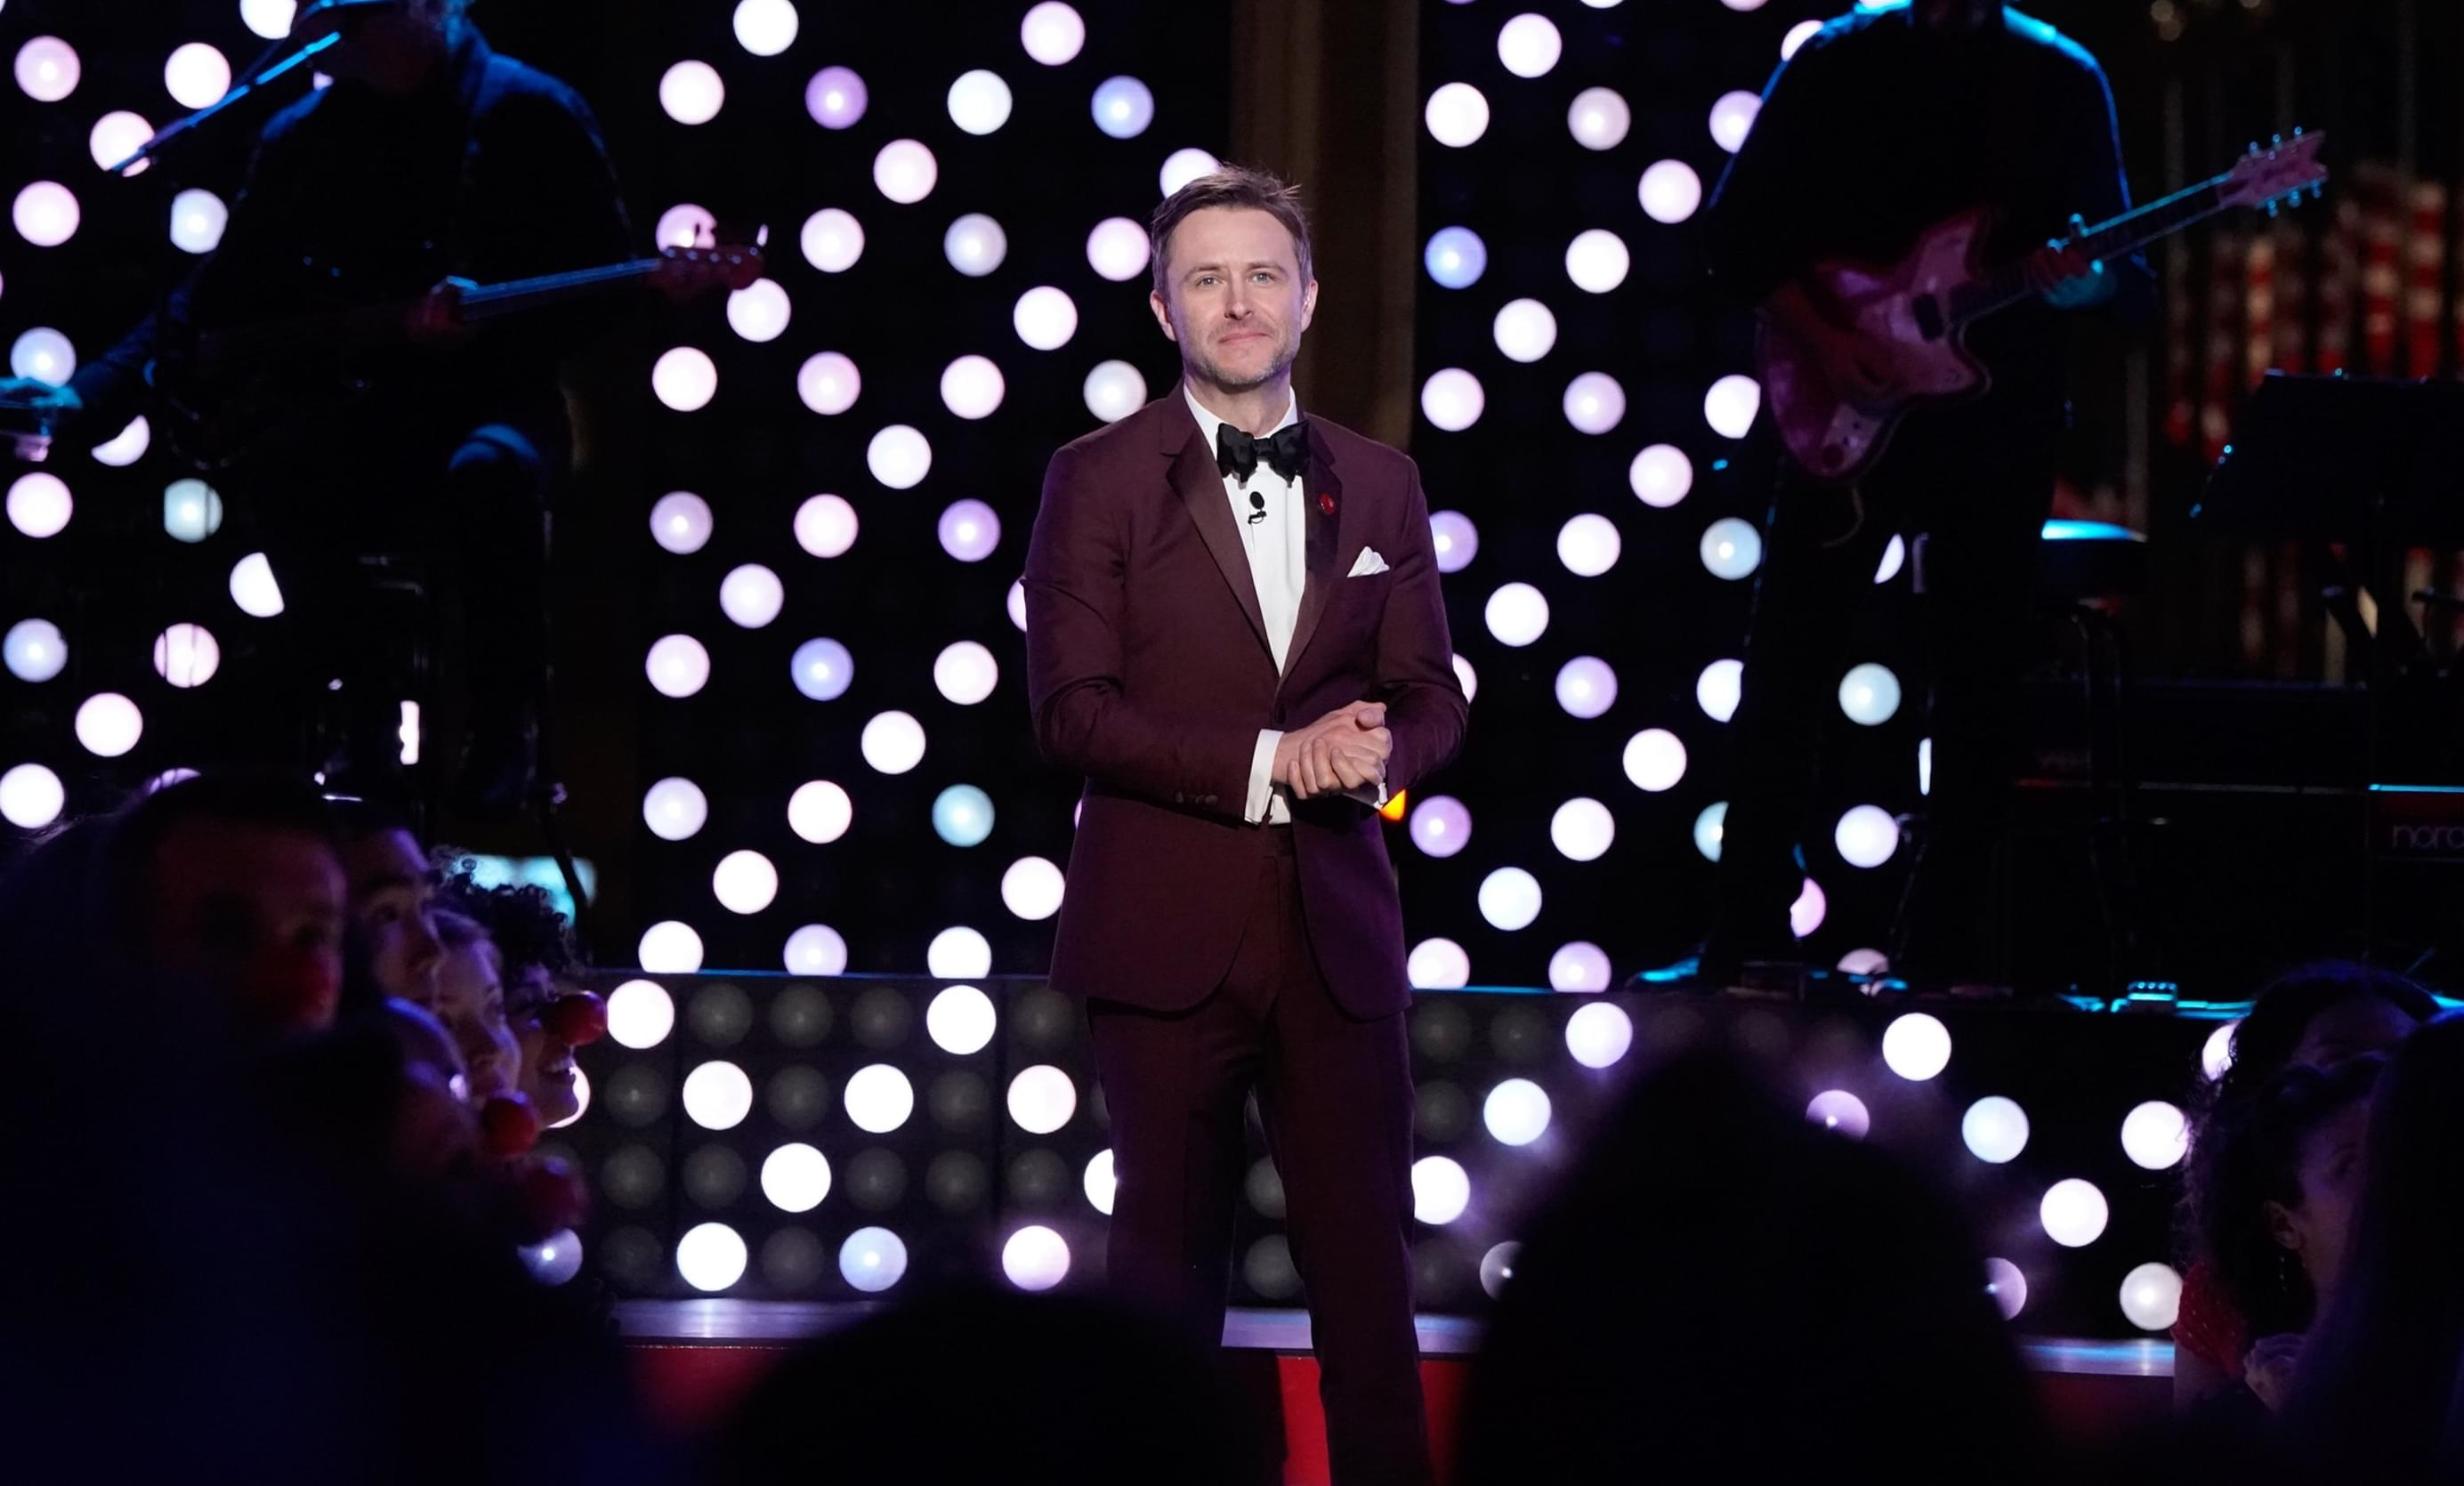 AMC SUSPENDS CHRIS HARDWICK TALK SHOW AFTER ALLEGATIONS